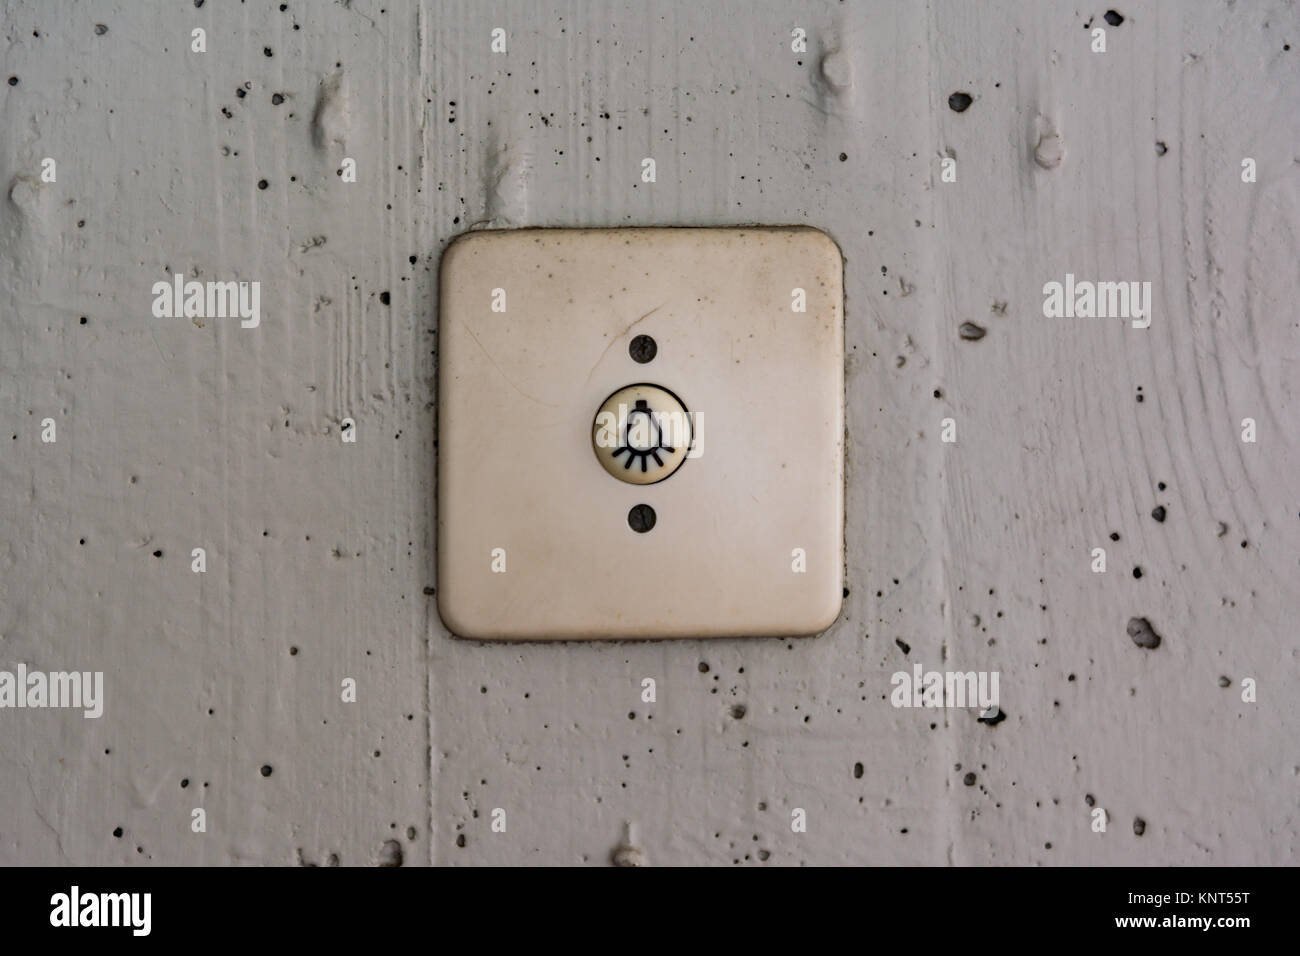 Old Dirty Outdoor Light Switch Residential Cover Plastic Stock Photo